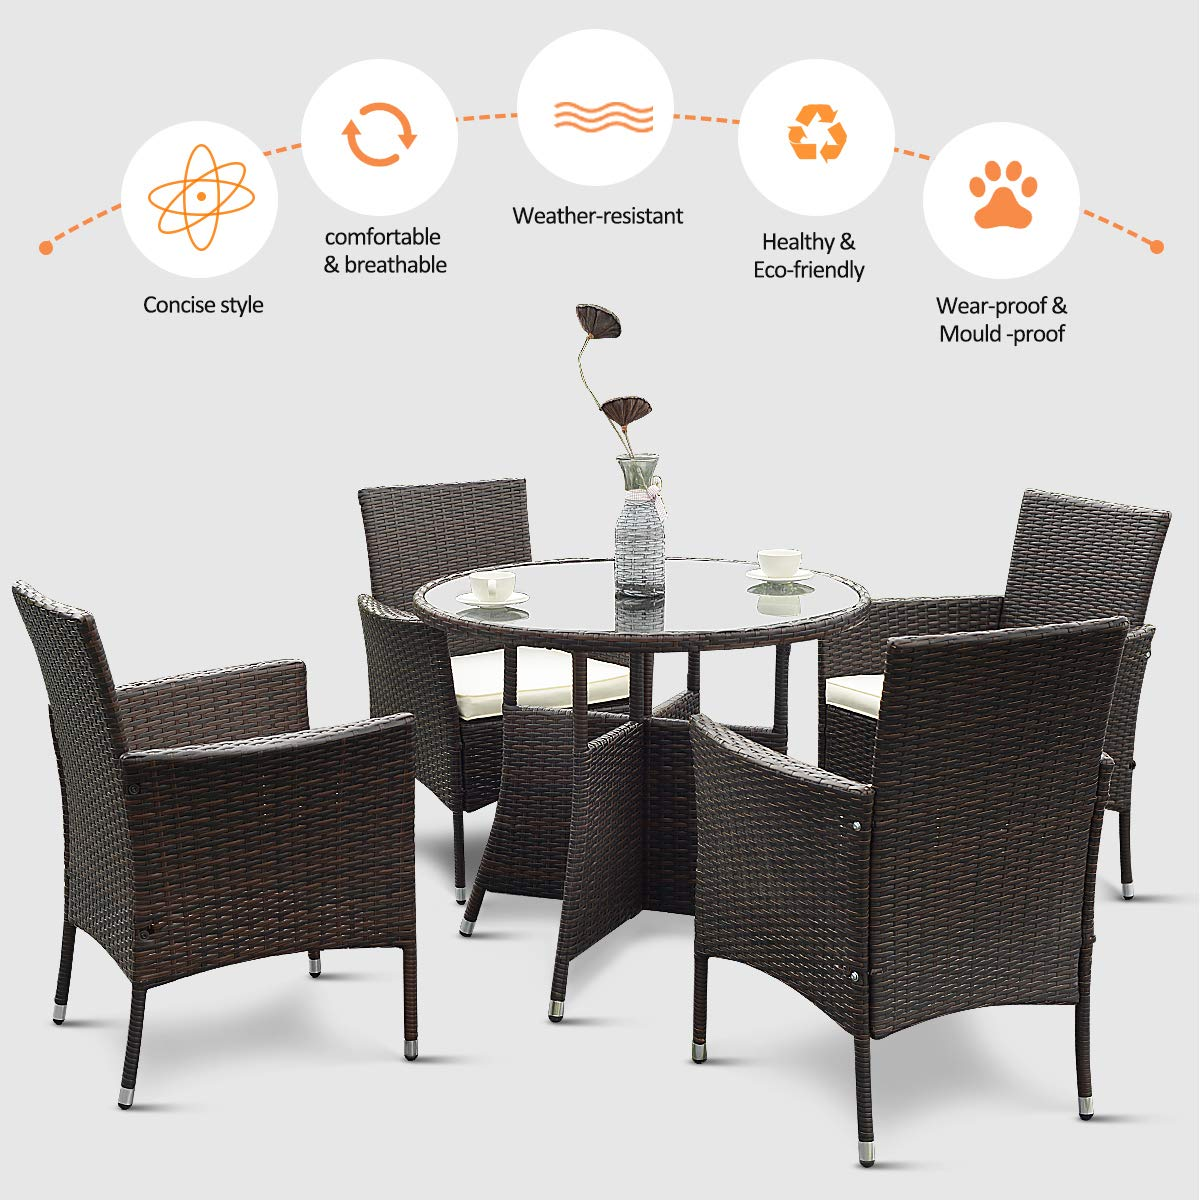 Tangkula 5 piece dining set patio furniture outdoor garden lawn rattan wicker table and chairs set conversation chat set with tempered glass top table